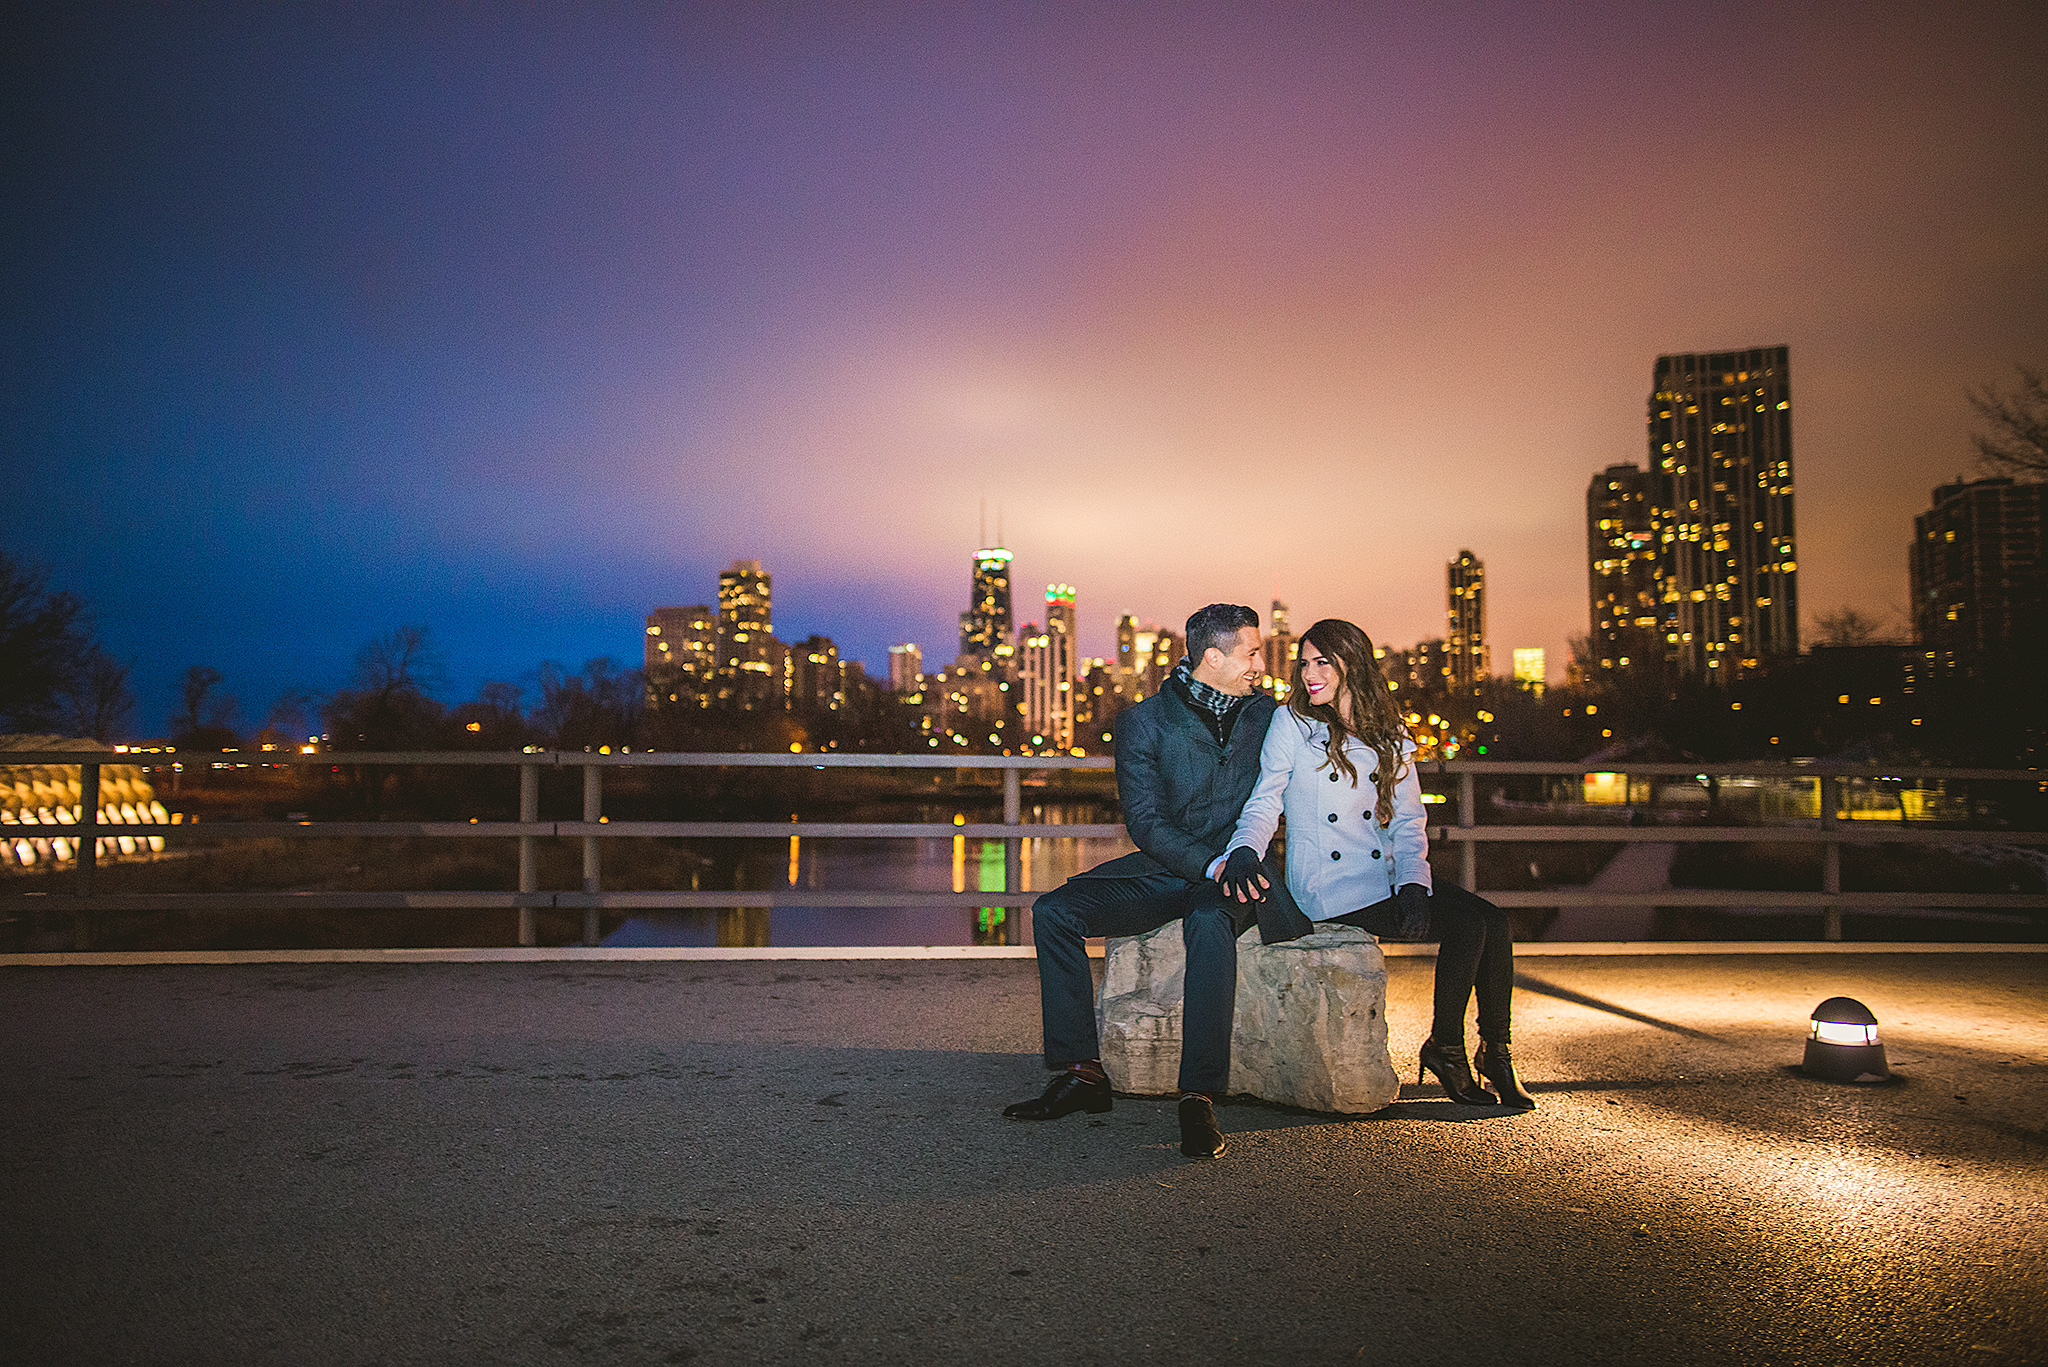 Lincoln-Park-Night-Skyline-Engagement-Photo